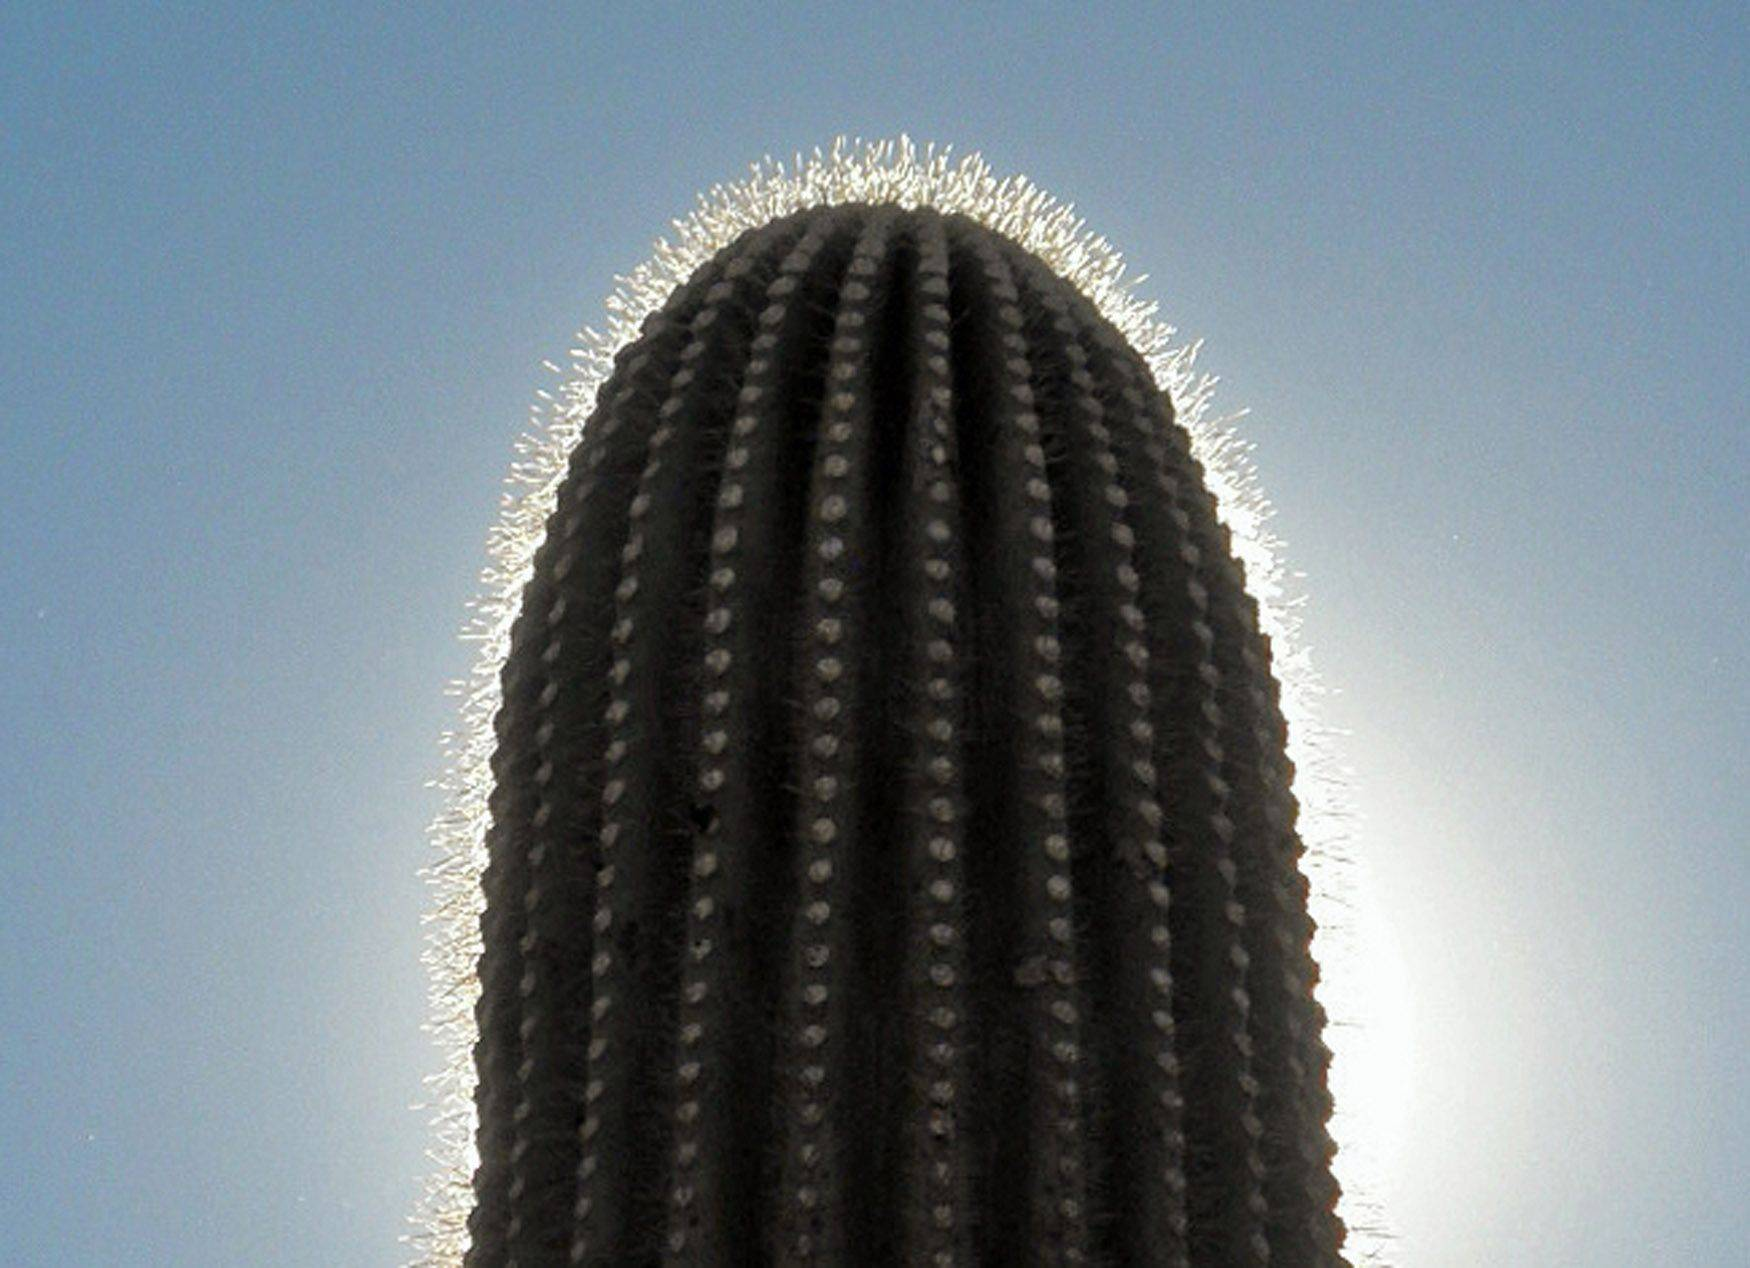 Th sun shines on a saguaro cactus last month in the Saguaro National Monument in Tucson, Arizona.